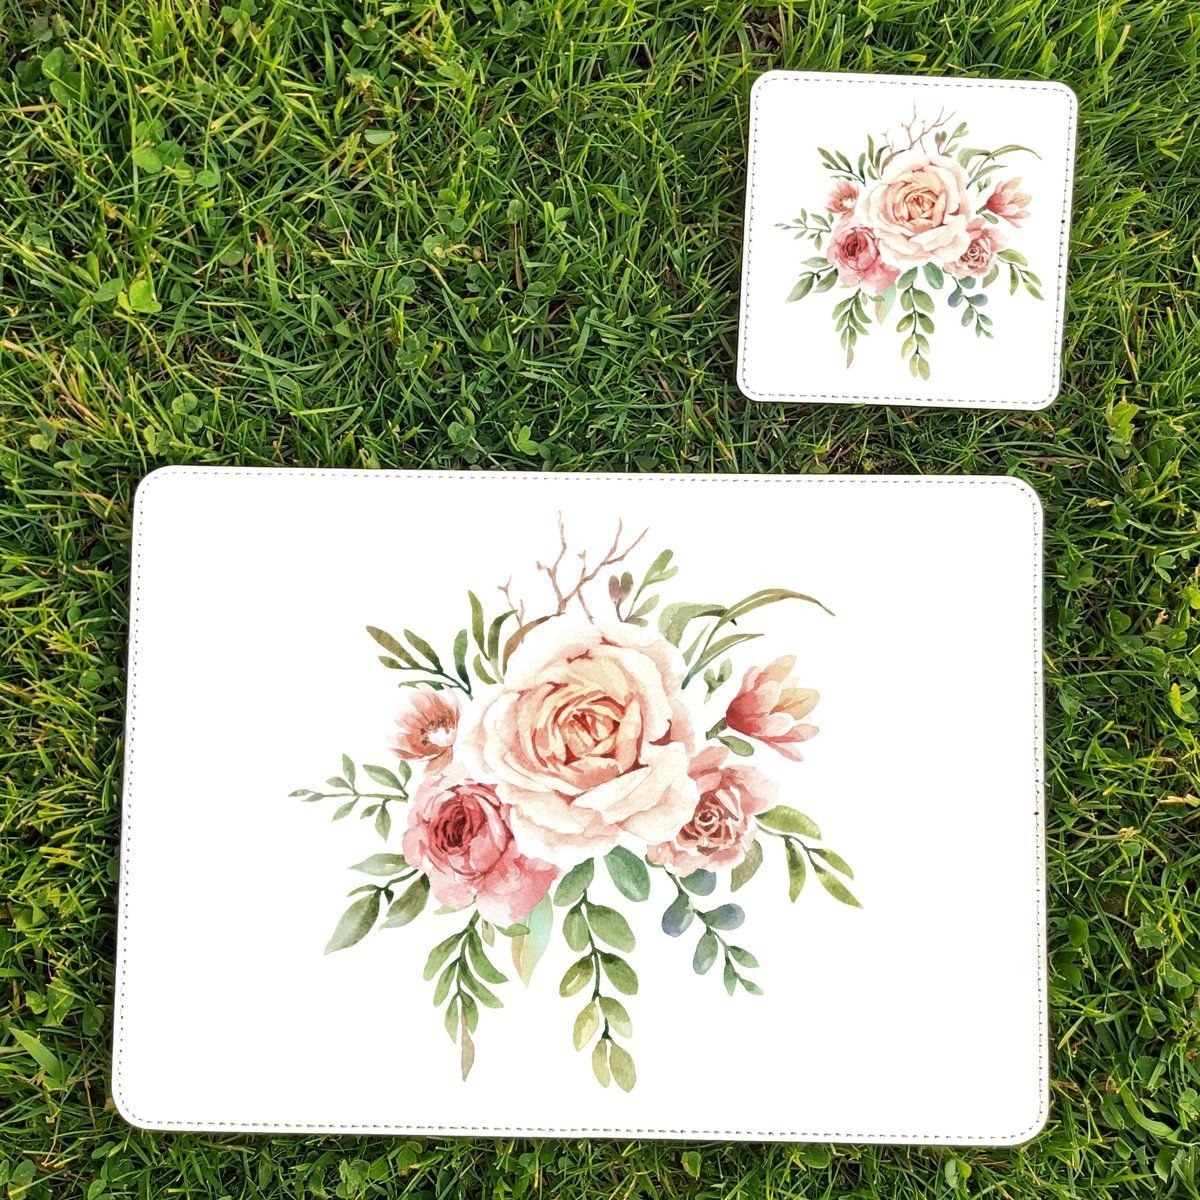 Flower Placemat And Coaster Set In 2020 Placemats Coasters Coaster Set